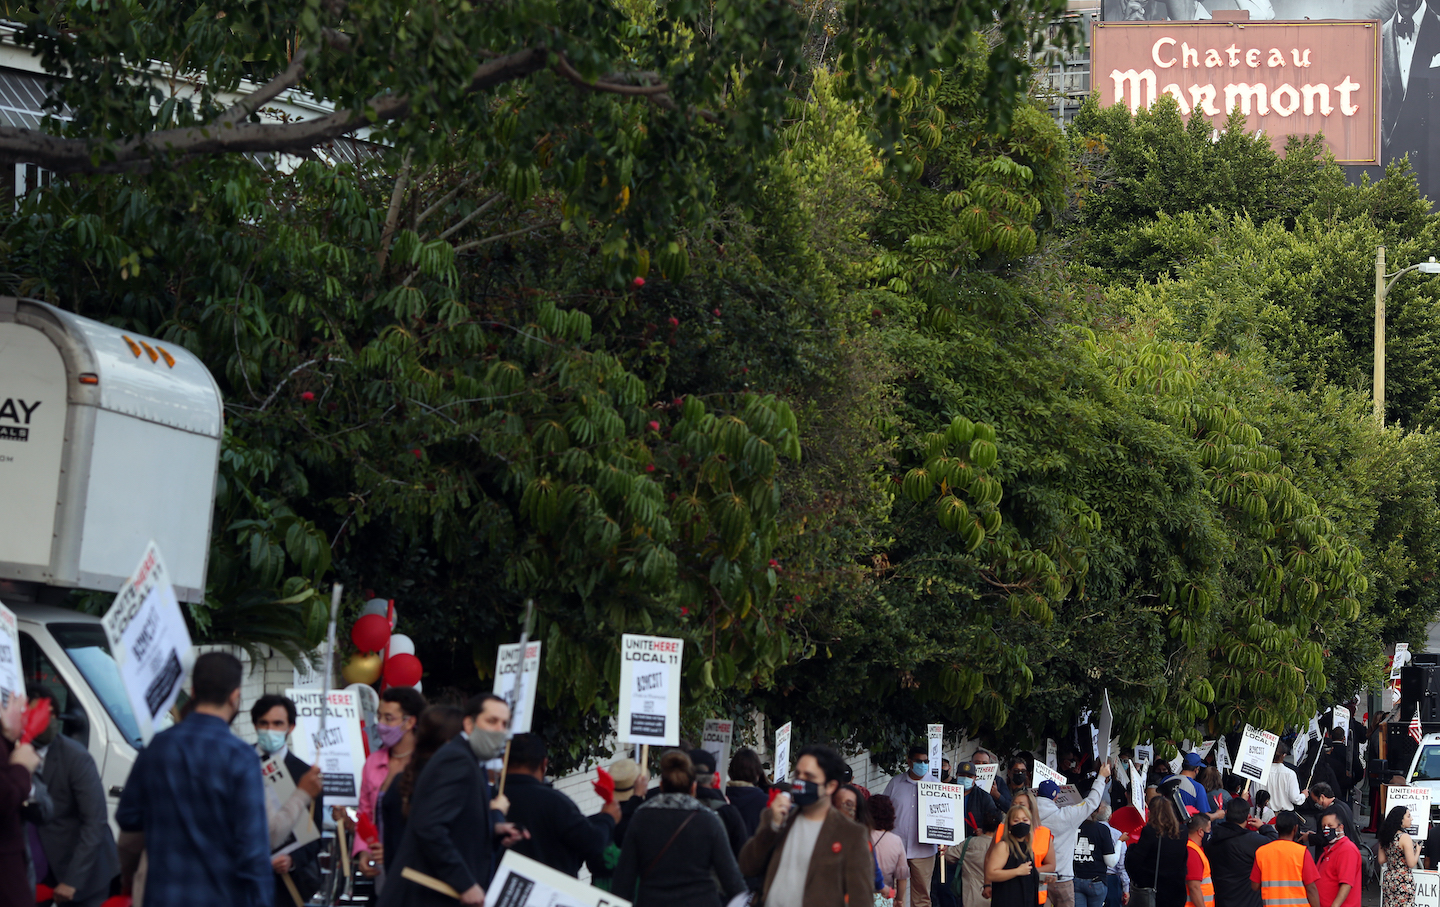 Protest outside Chateau Marmont against firing of workers